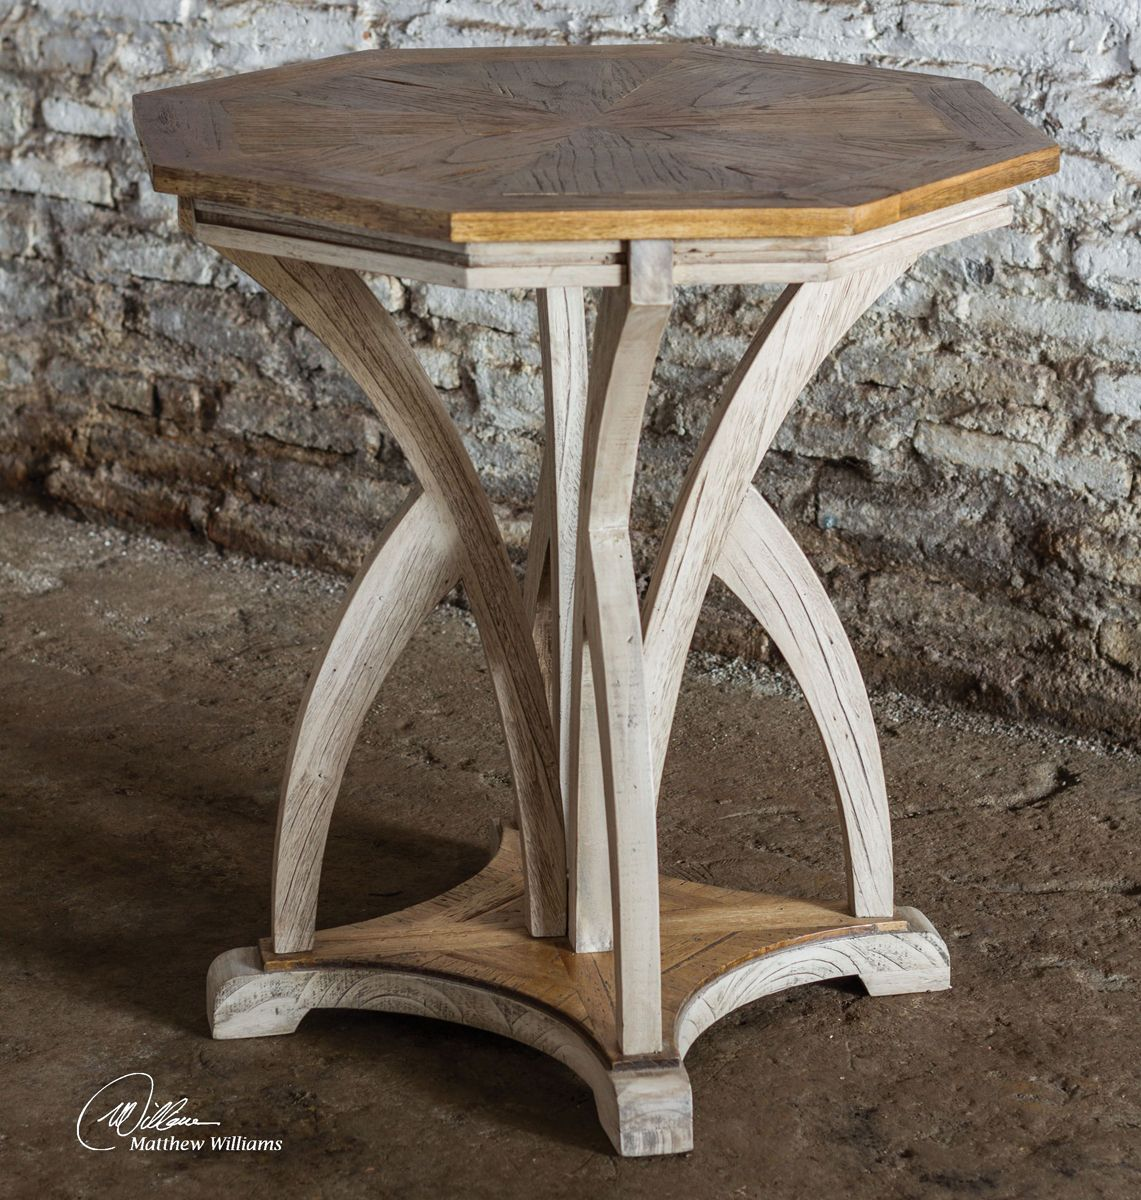 pin fratantoni lifestyles uttermost asher blue accent table living room ranen aged white mclaughlins home furnishing designs southgate novi and utica built bbq ideas lawn